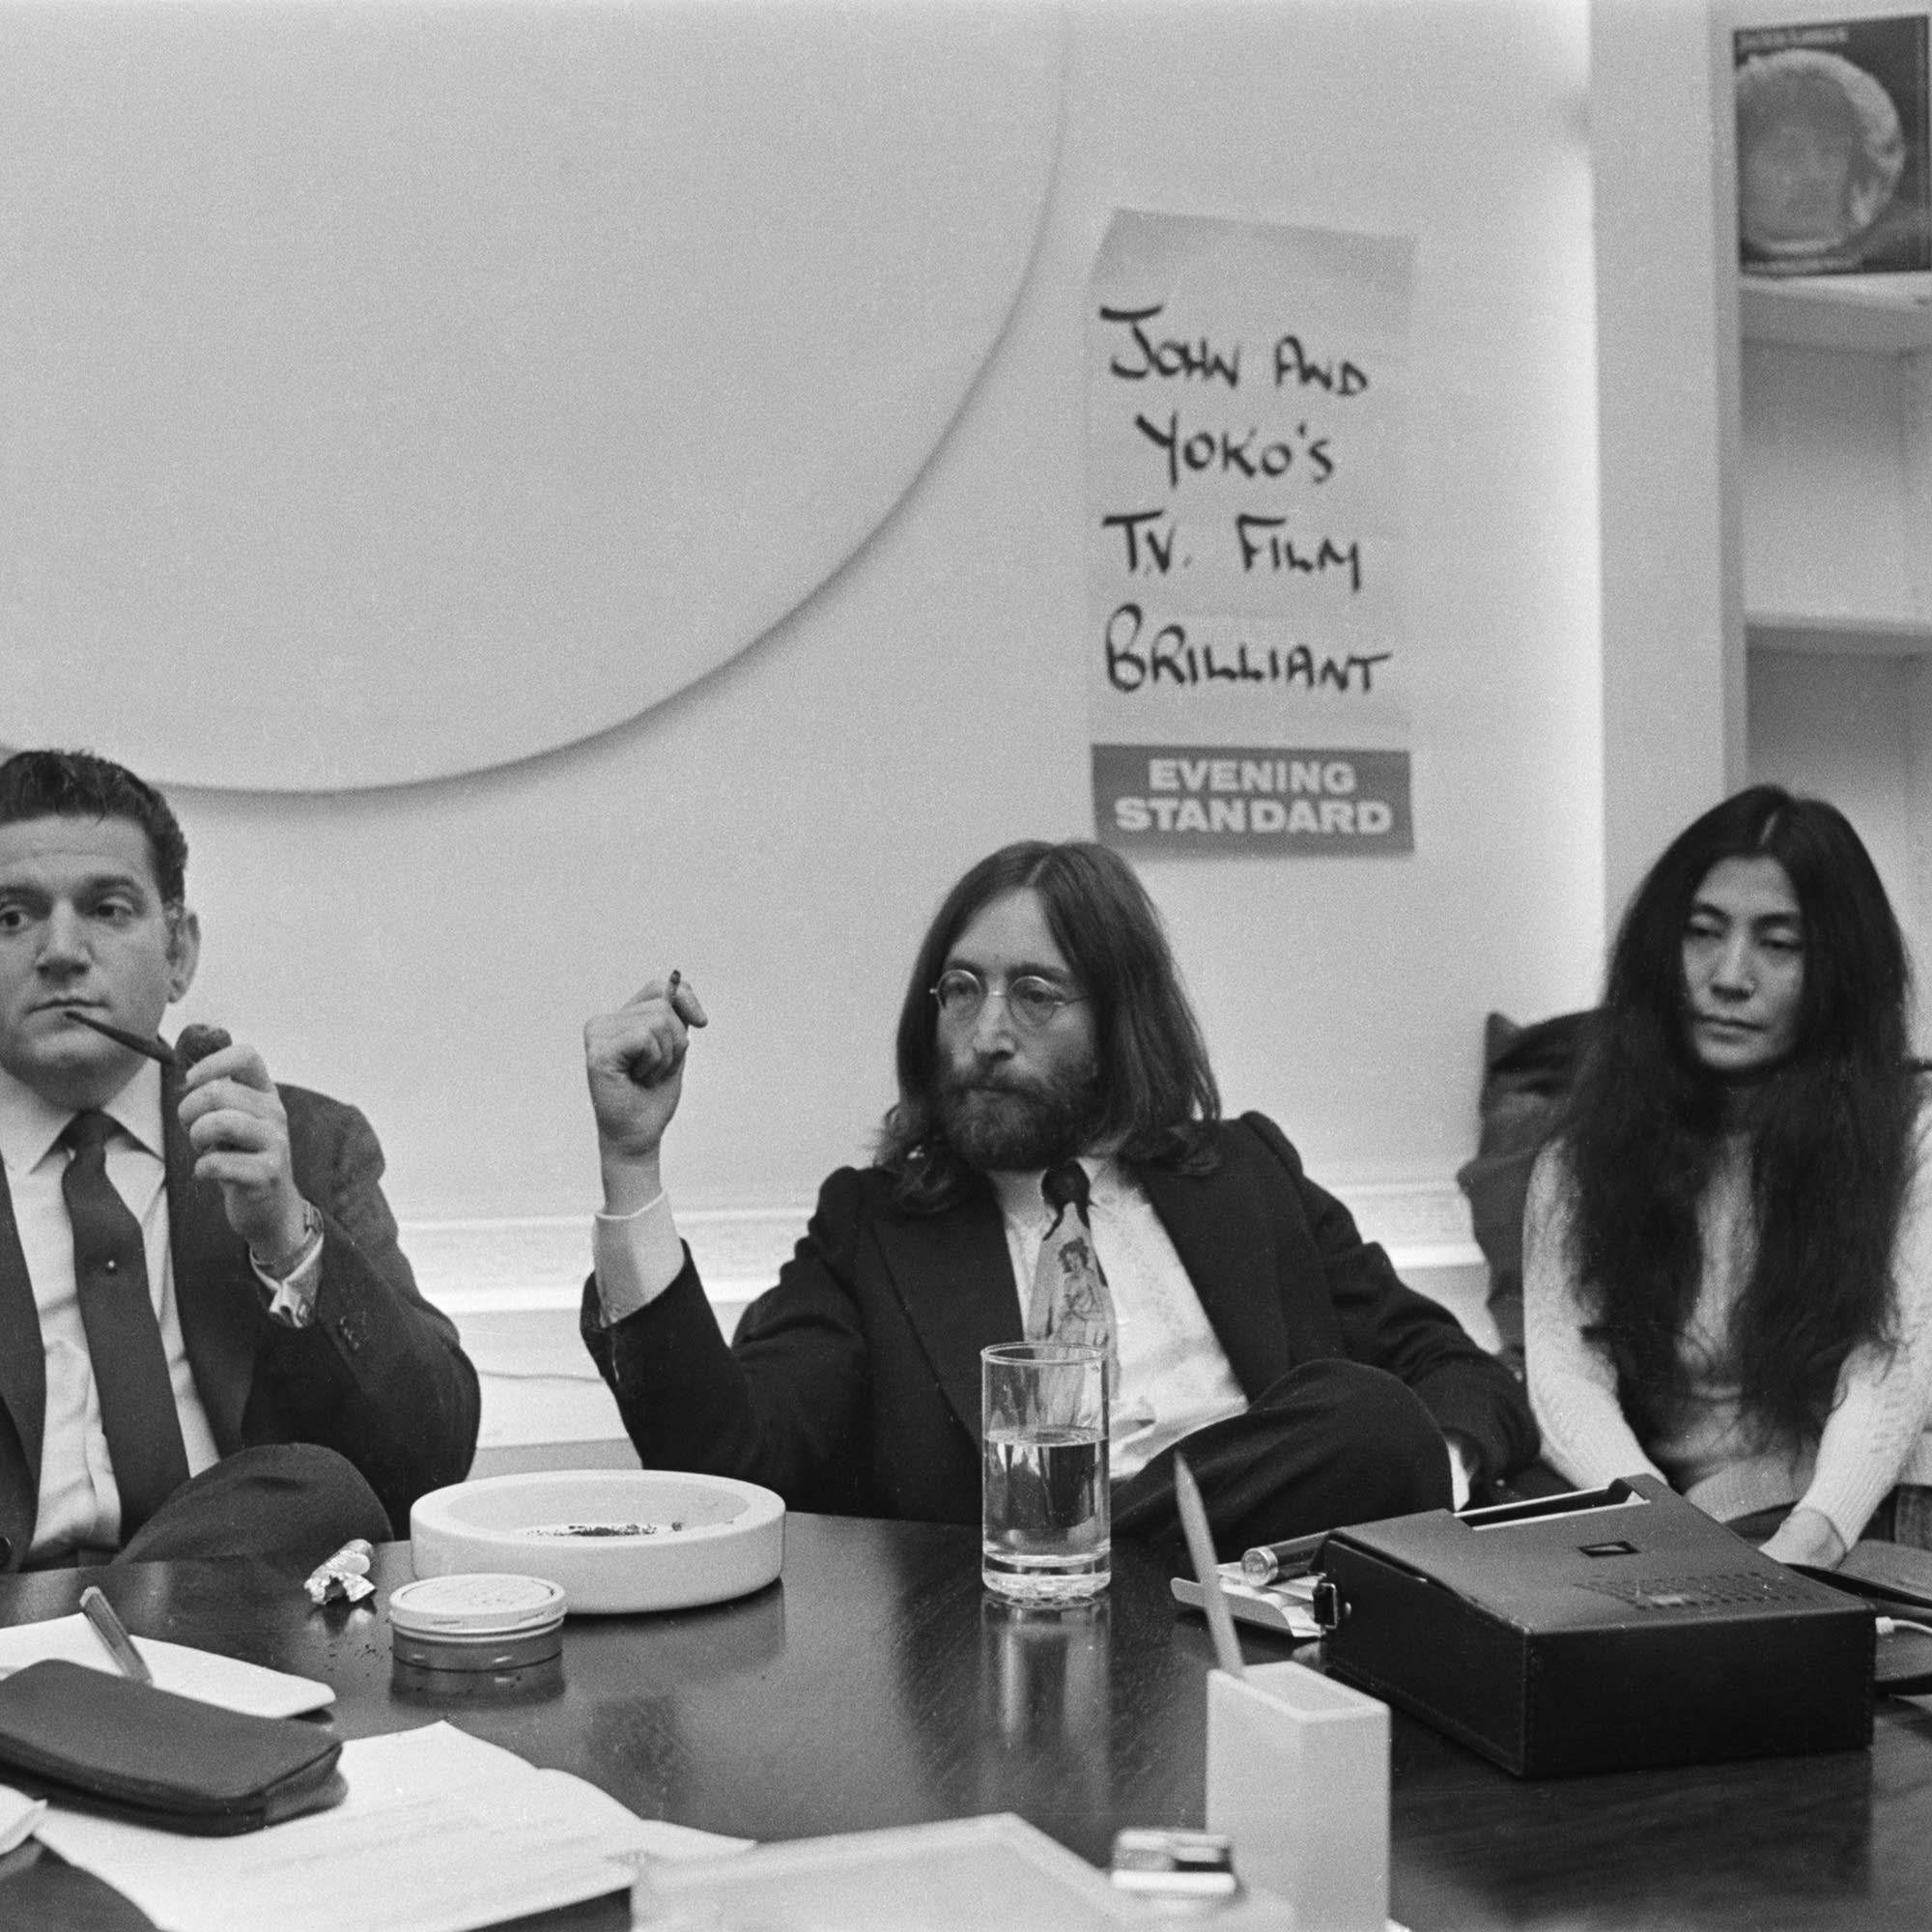 Allen Klein with John Lennon and Yoko Ono